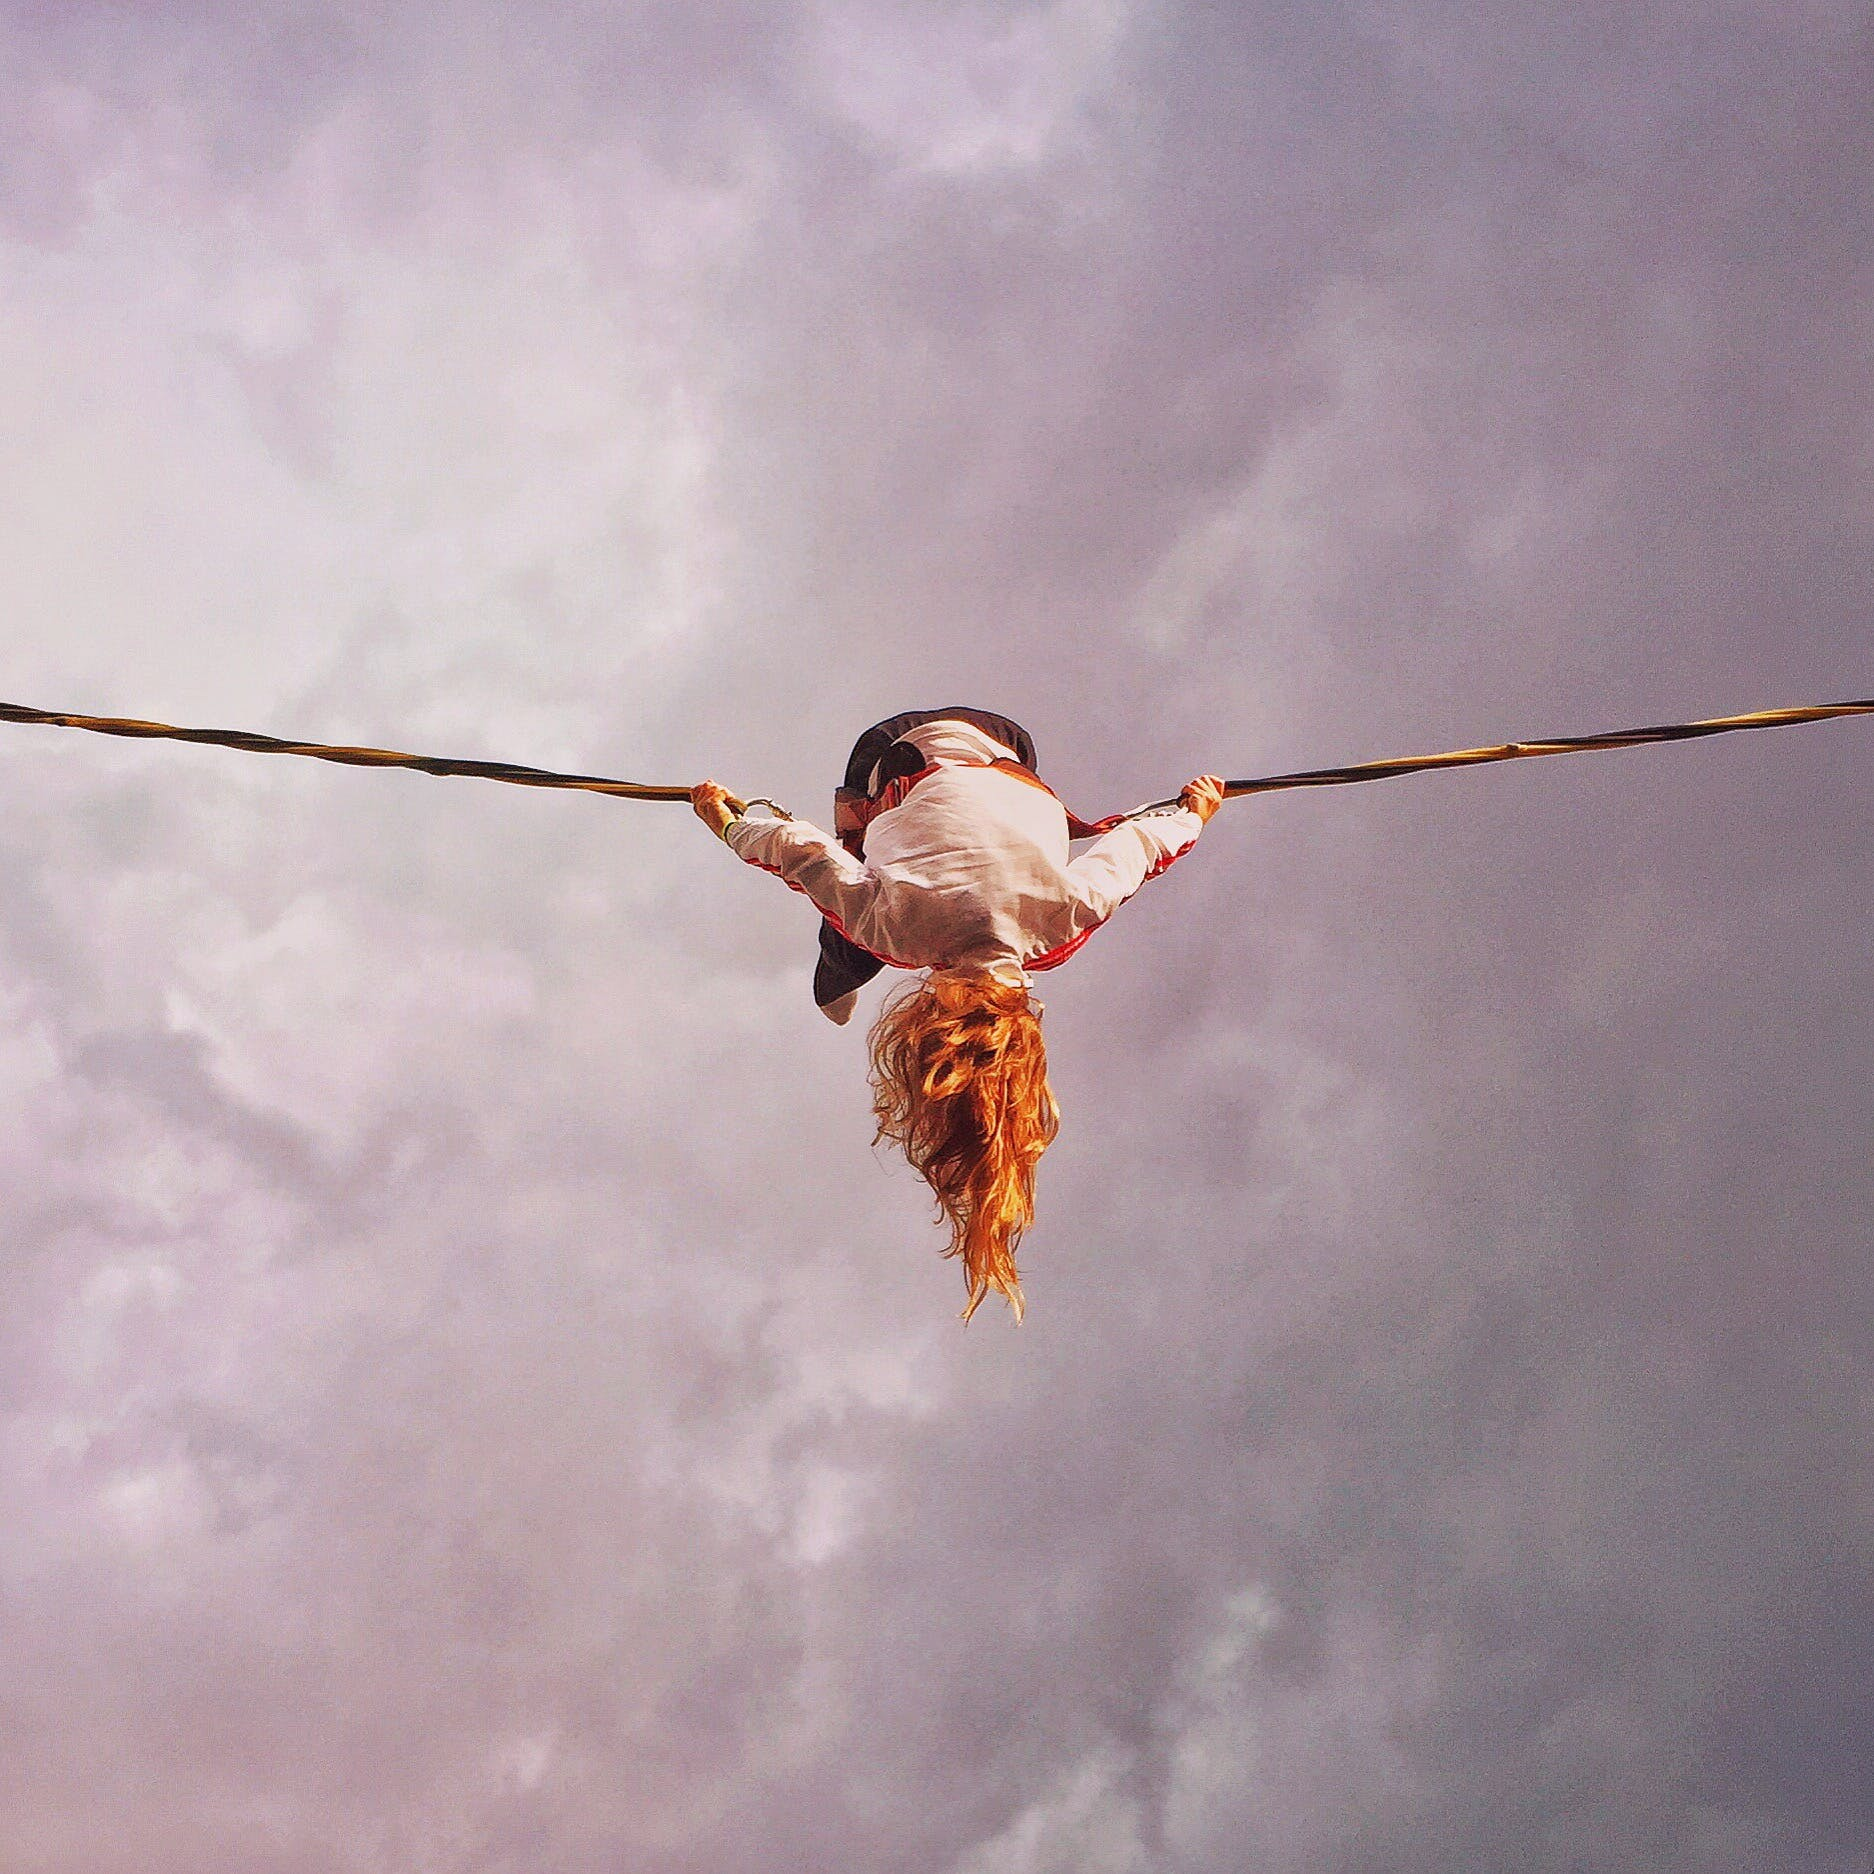 Free stock photo of sky, person, rope, freedom